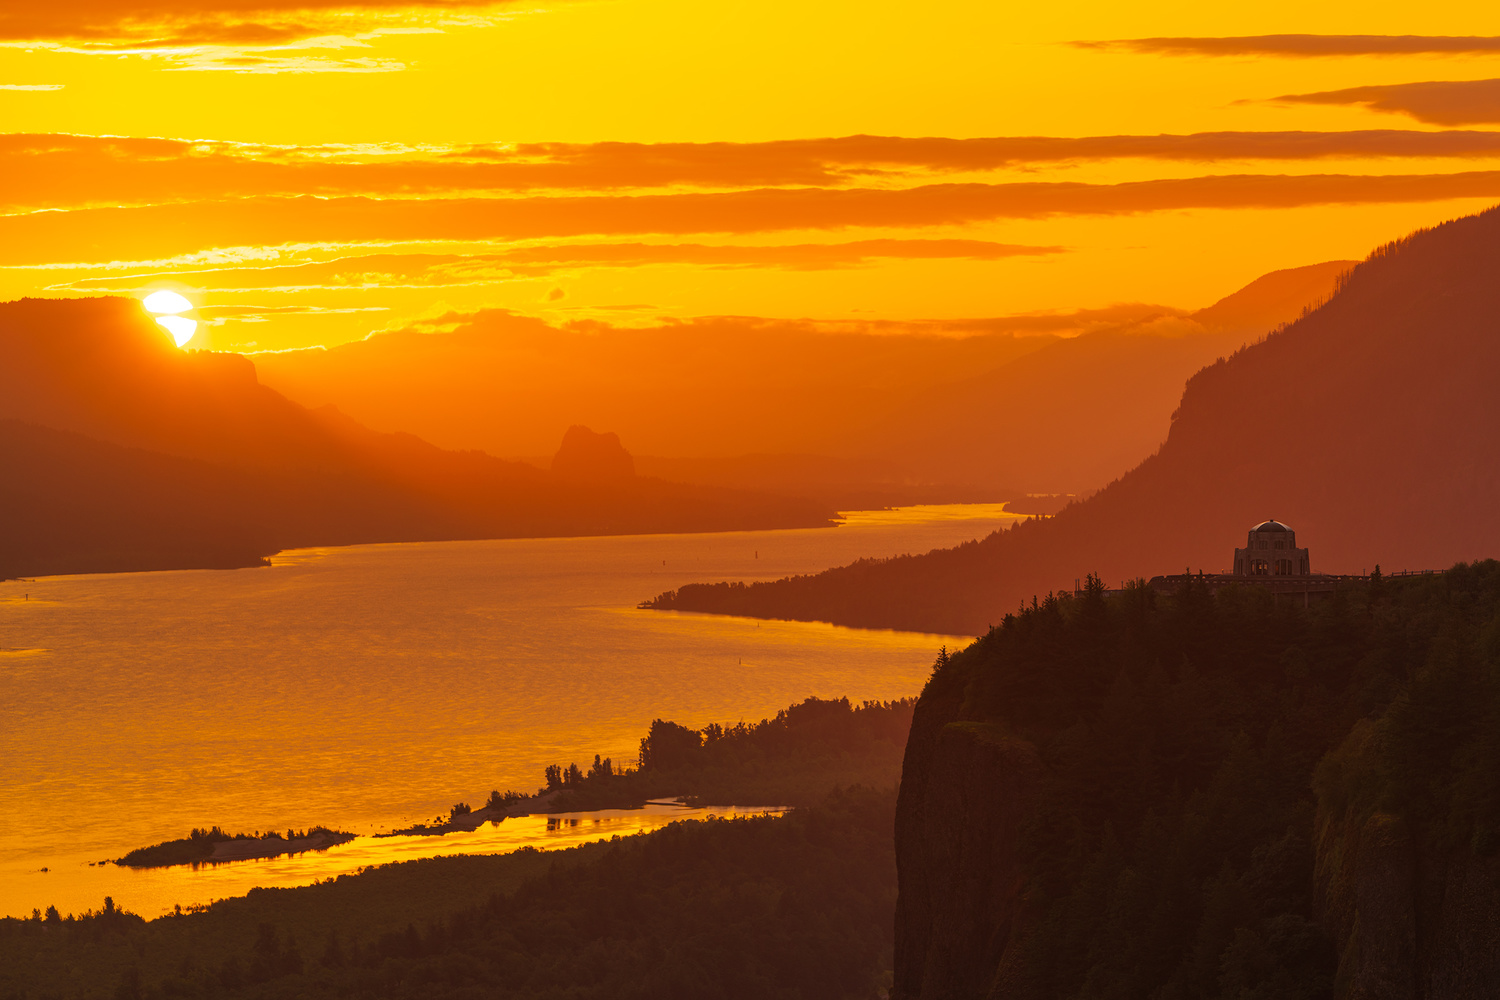 Sunrise in the Columbia River Gorge by Daniel Gomez